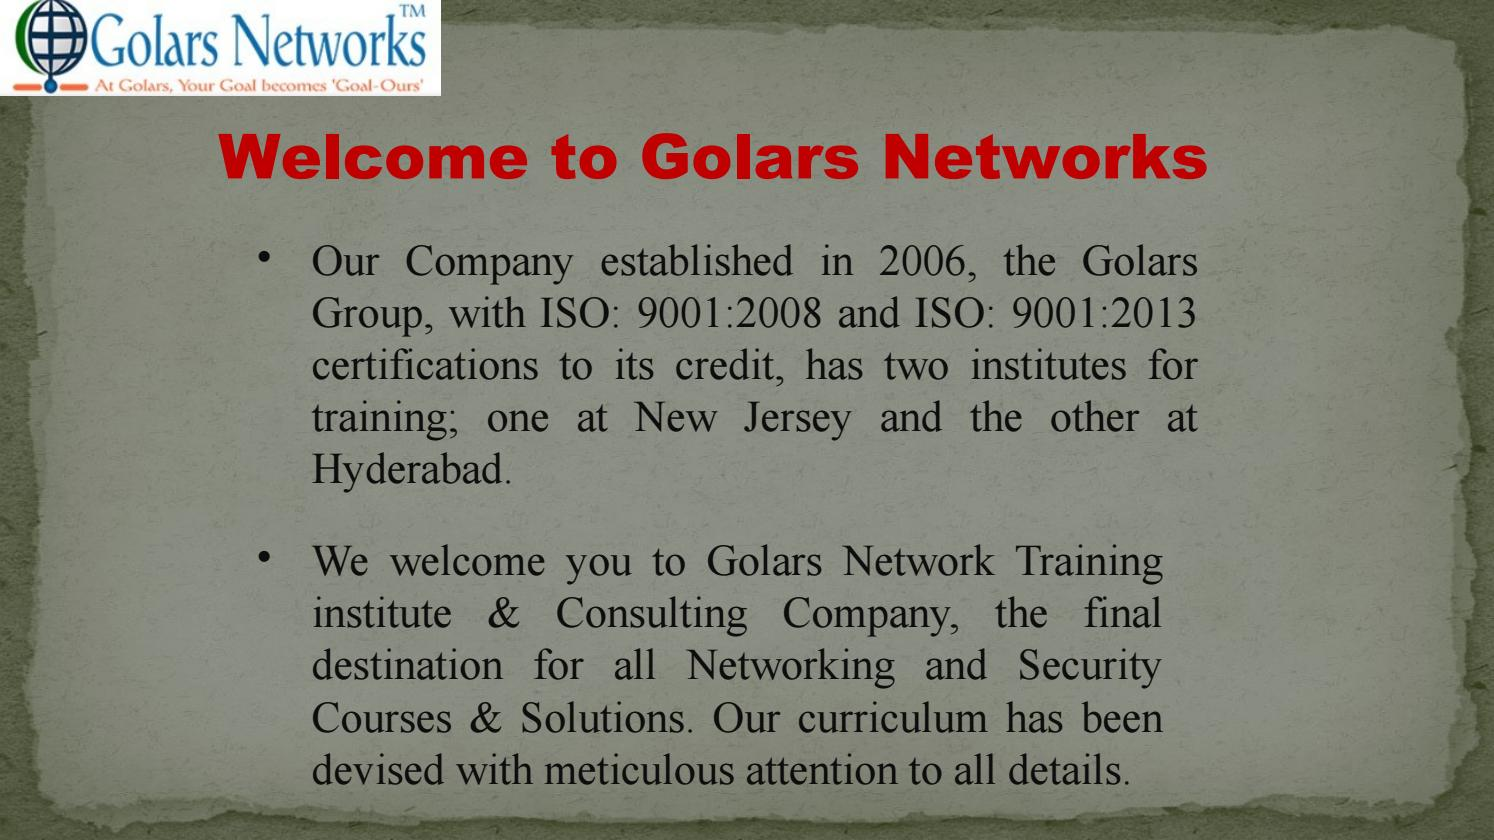 Networking placement consultancy in hyderabad golars networks by networking placement consultancy in hyderabad golars networks by golarsnetworks issuu 1betcityfo Image collections